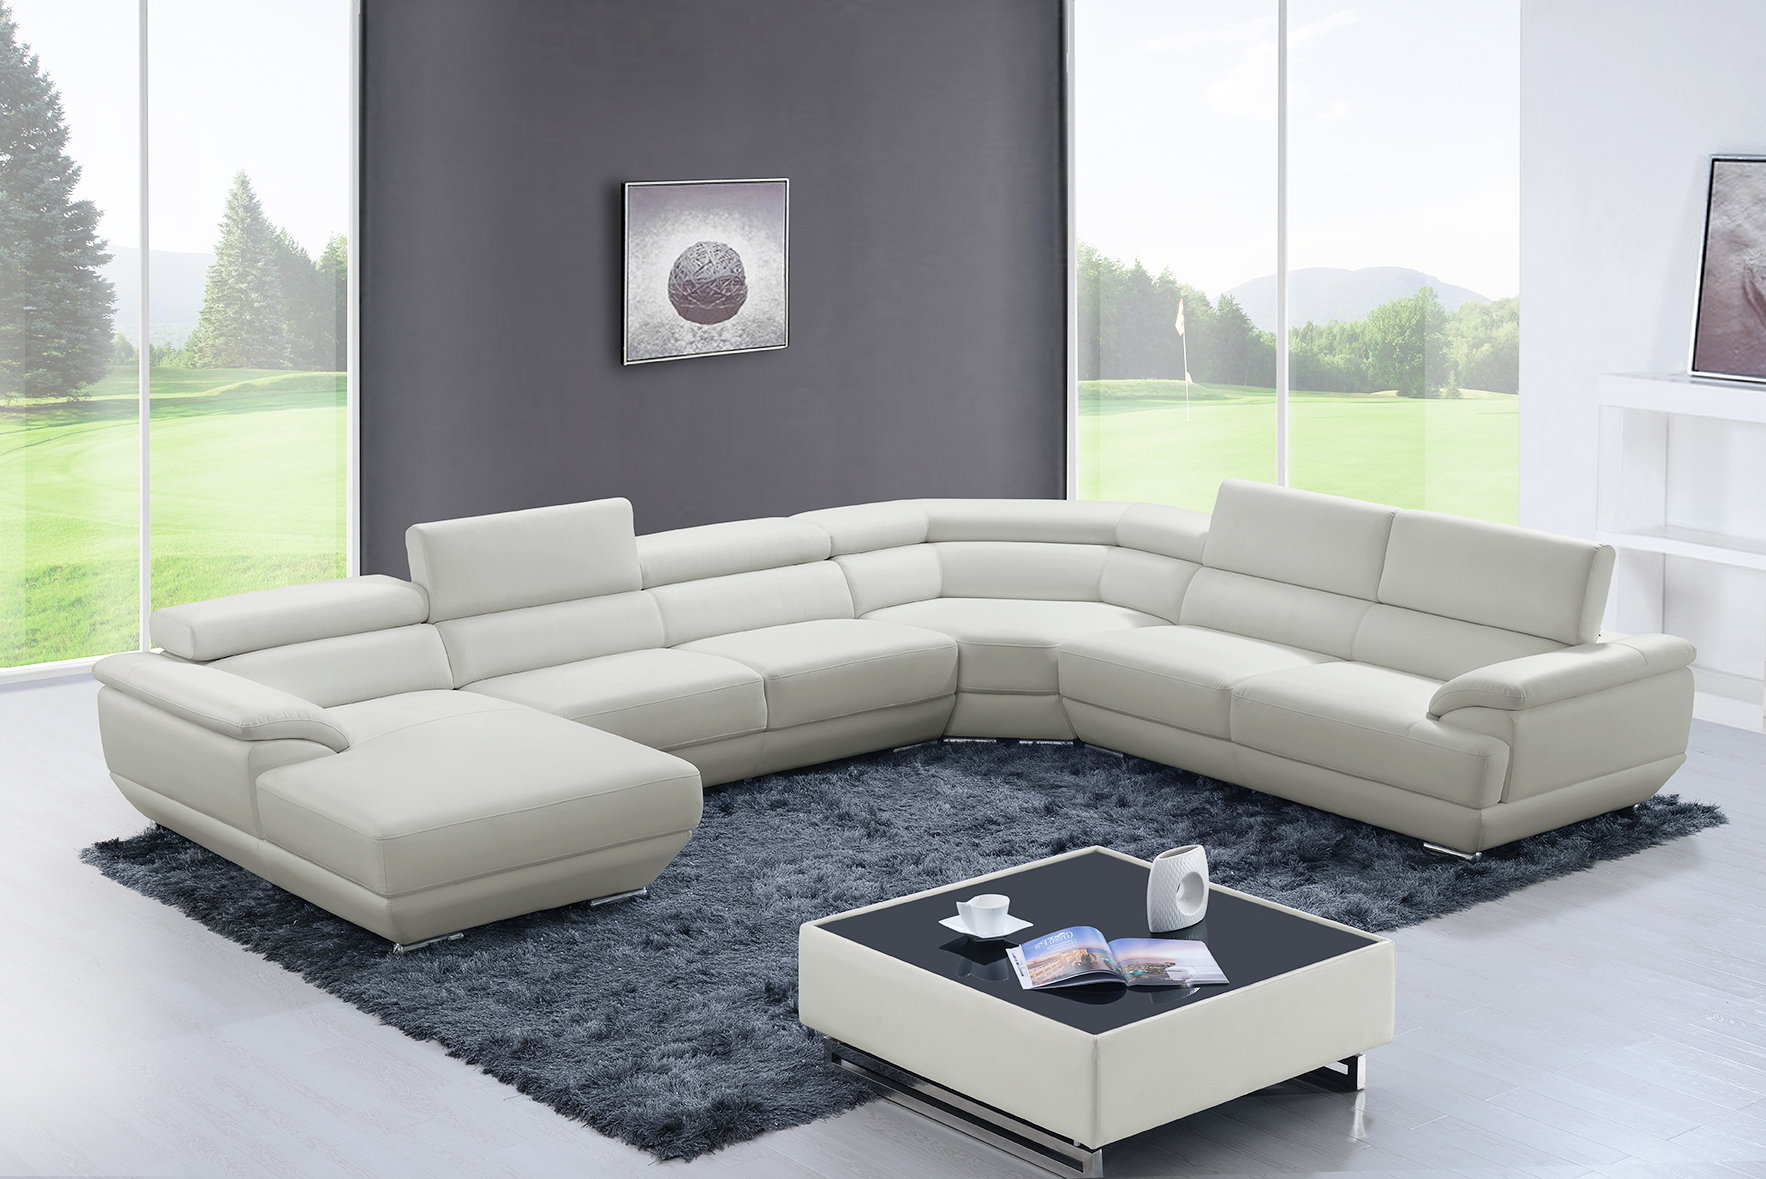 Newest 430 Sectional Off White, Sectionals, Living Room Furniture In Sectional Sofas In White (View 3 of 20)